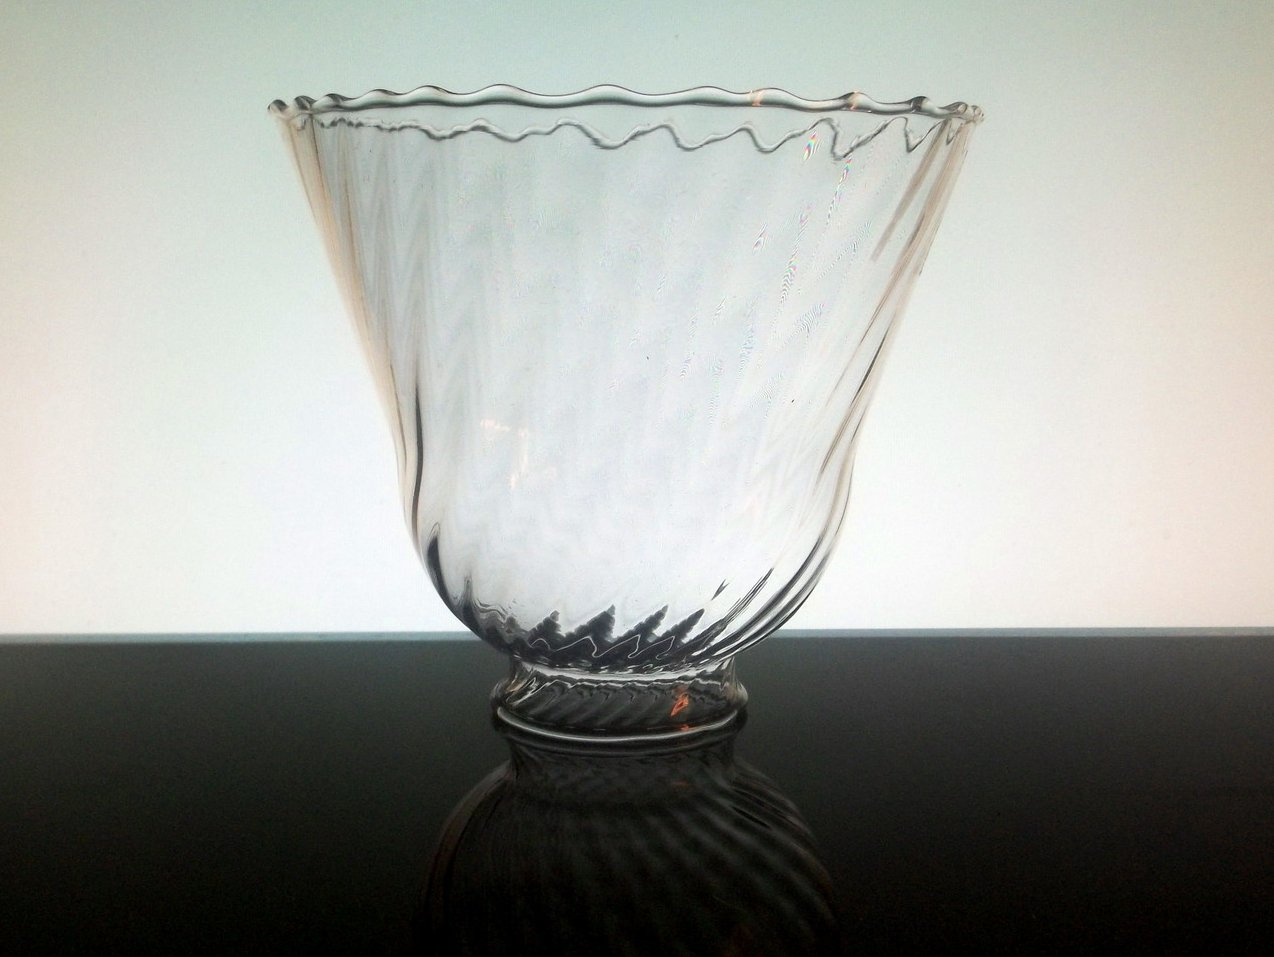 Glas Lamp Glass Lamp Shade 2 1 8 Fitter X 5 X 5 5 Inches Rippled